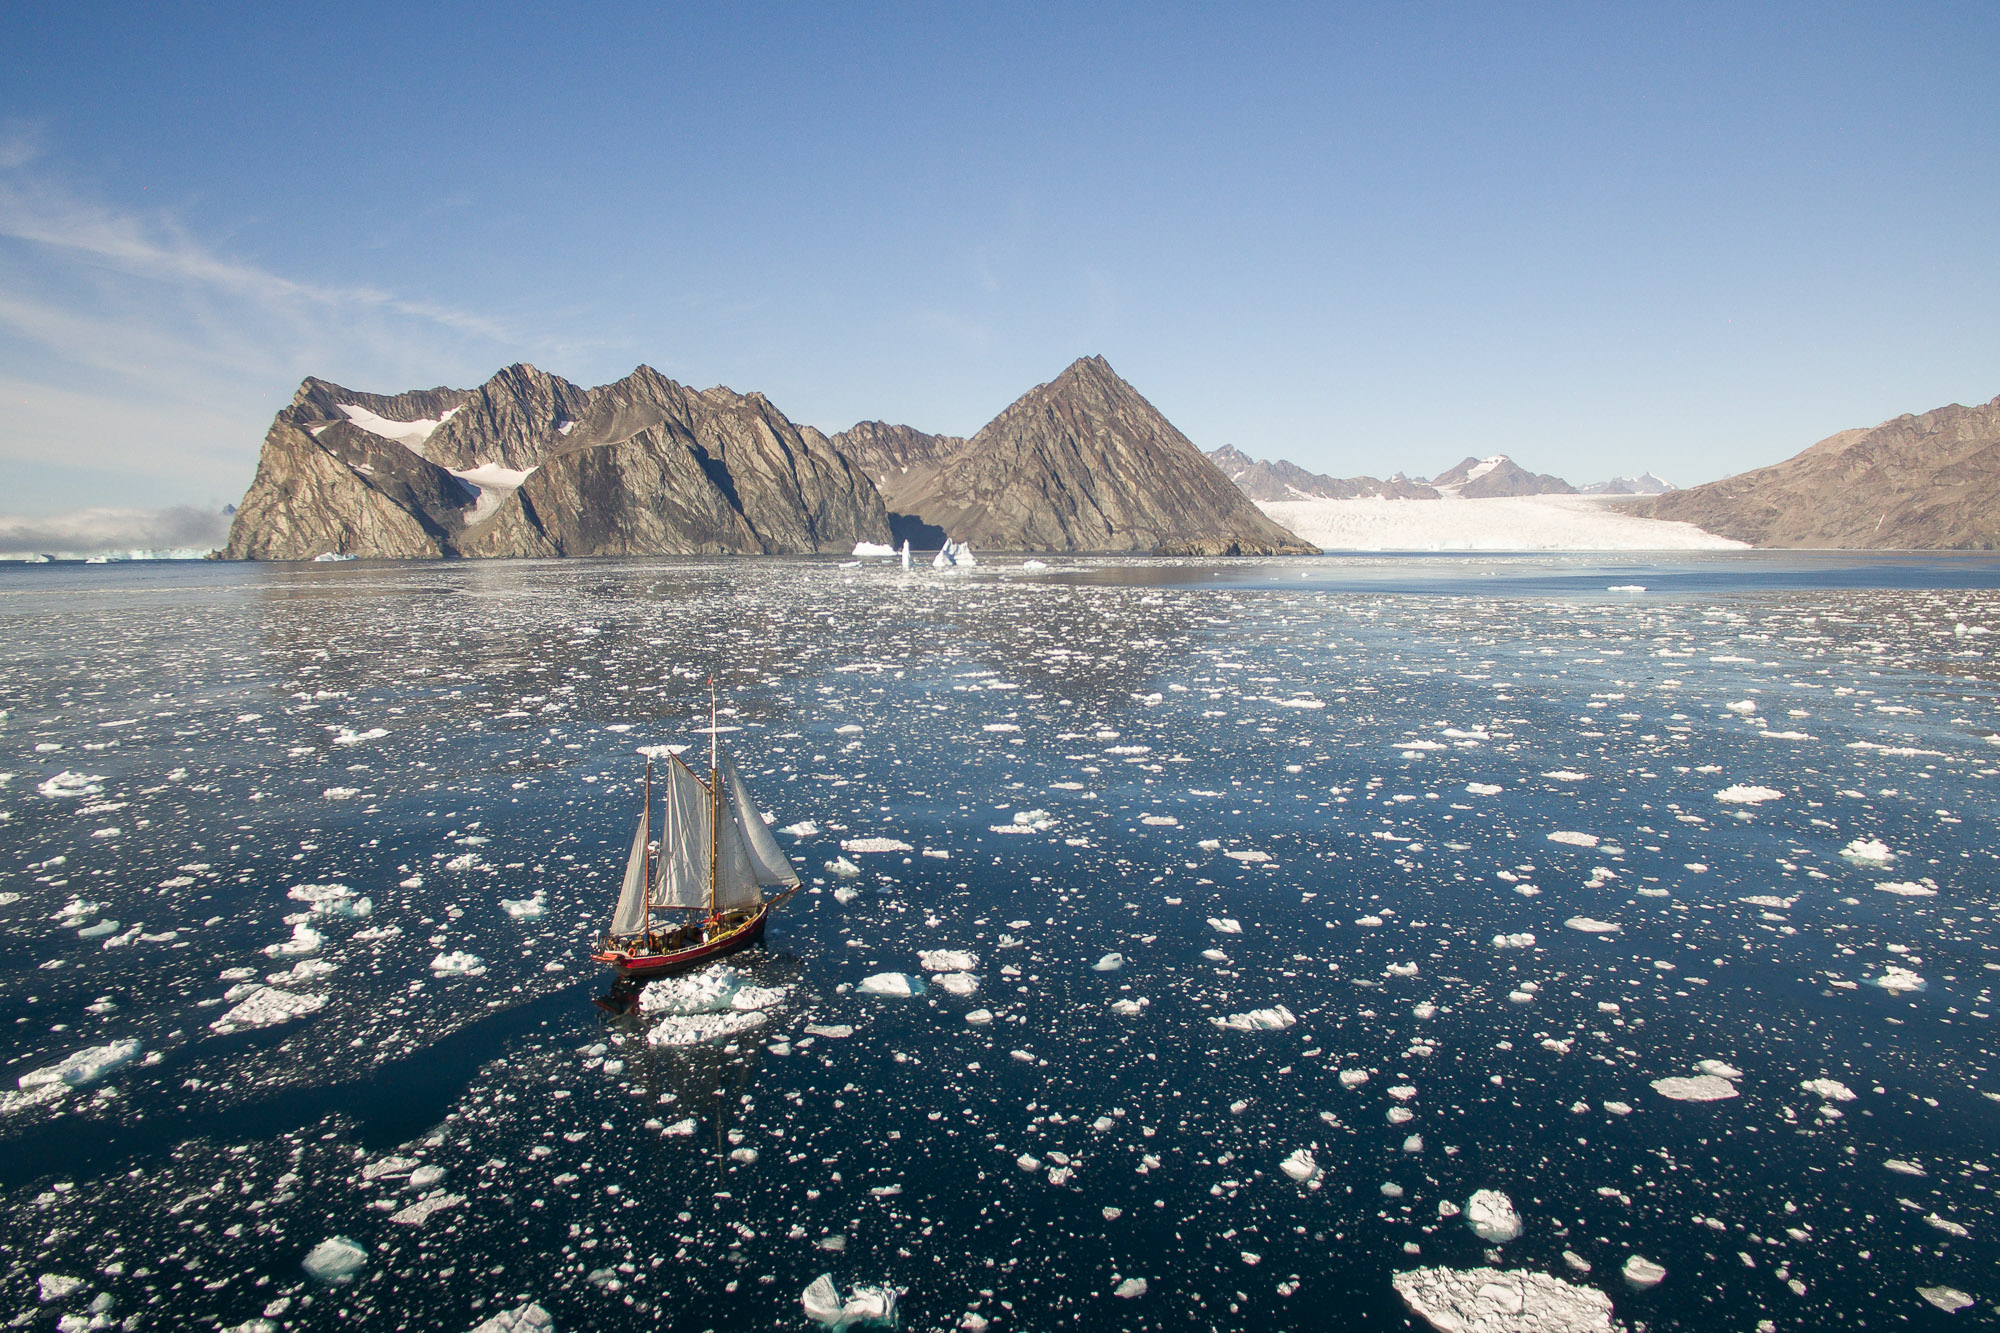 Expedition sailboat Arktika enters Tasiilaq fjord in east Greenland.